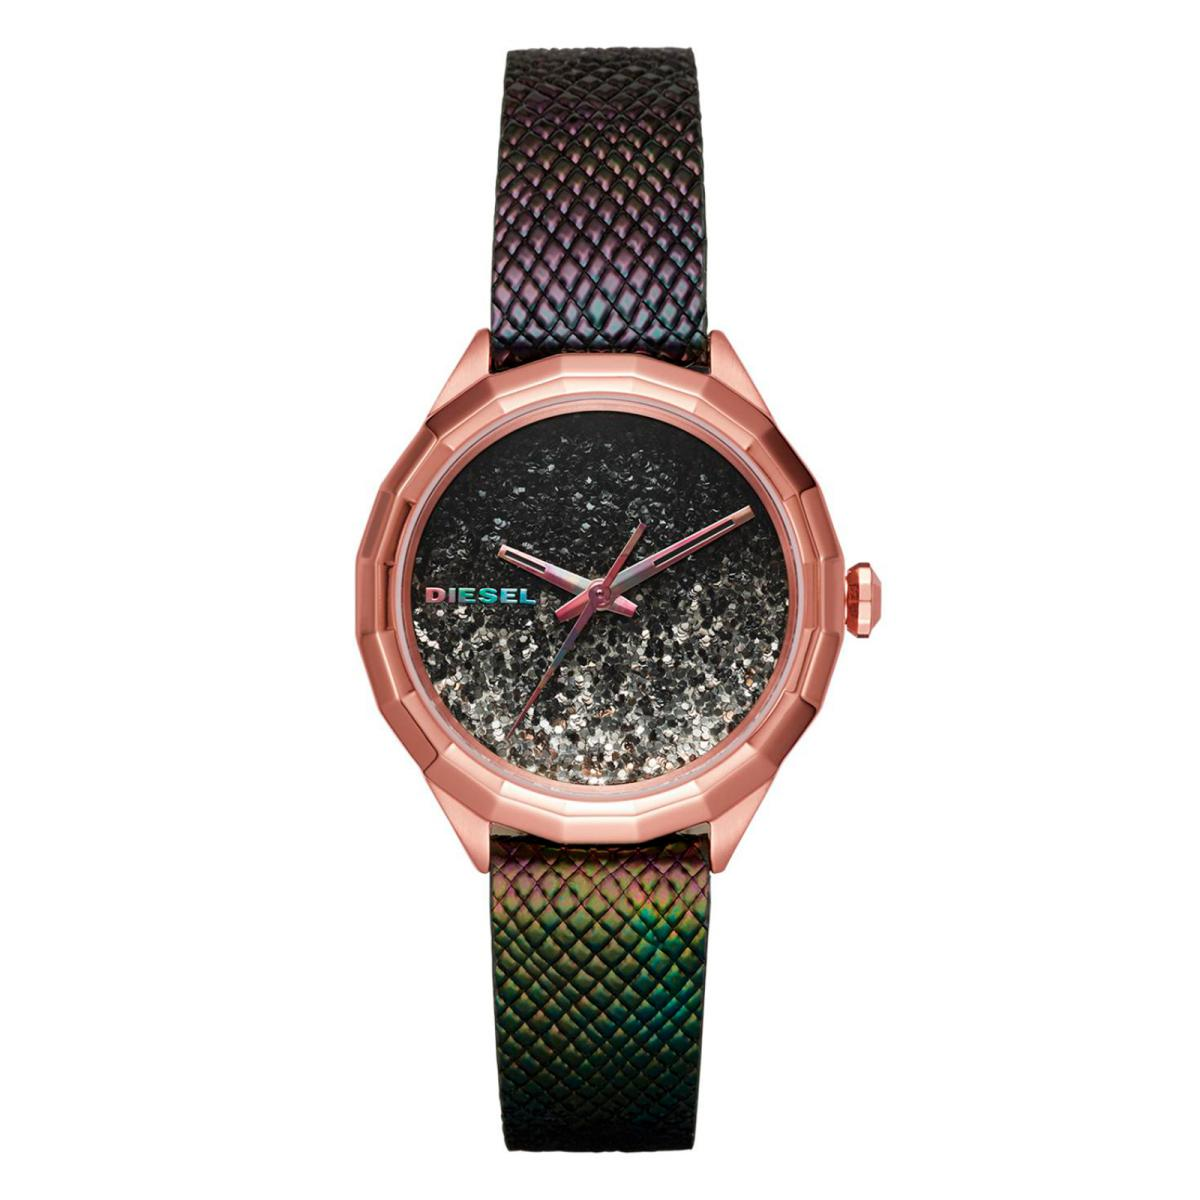 87c4be7a690d Reloj Diesel - DZ5536 - Mujer - Time Square